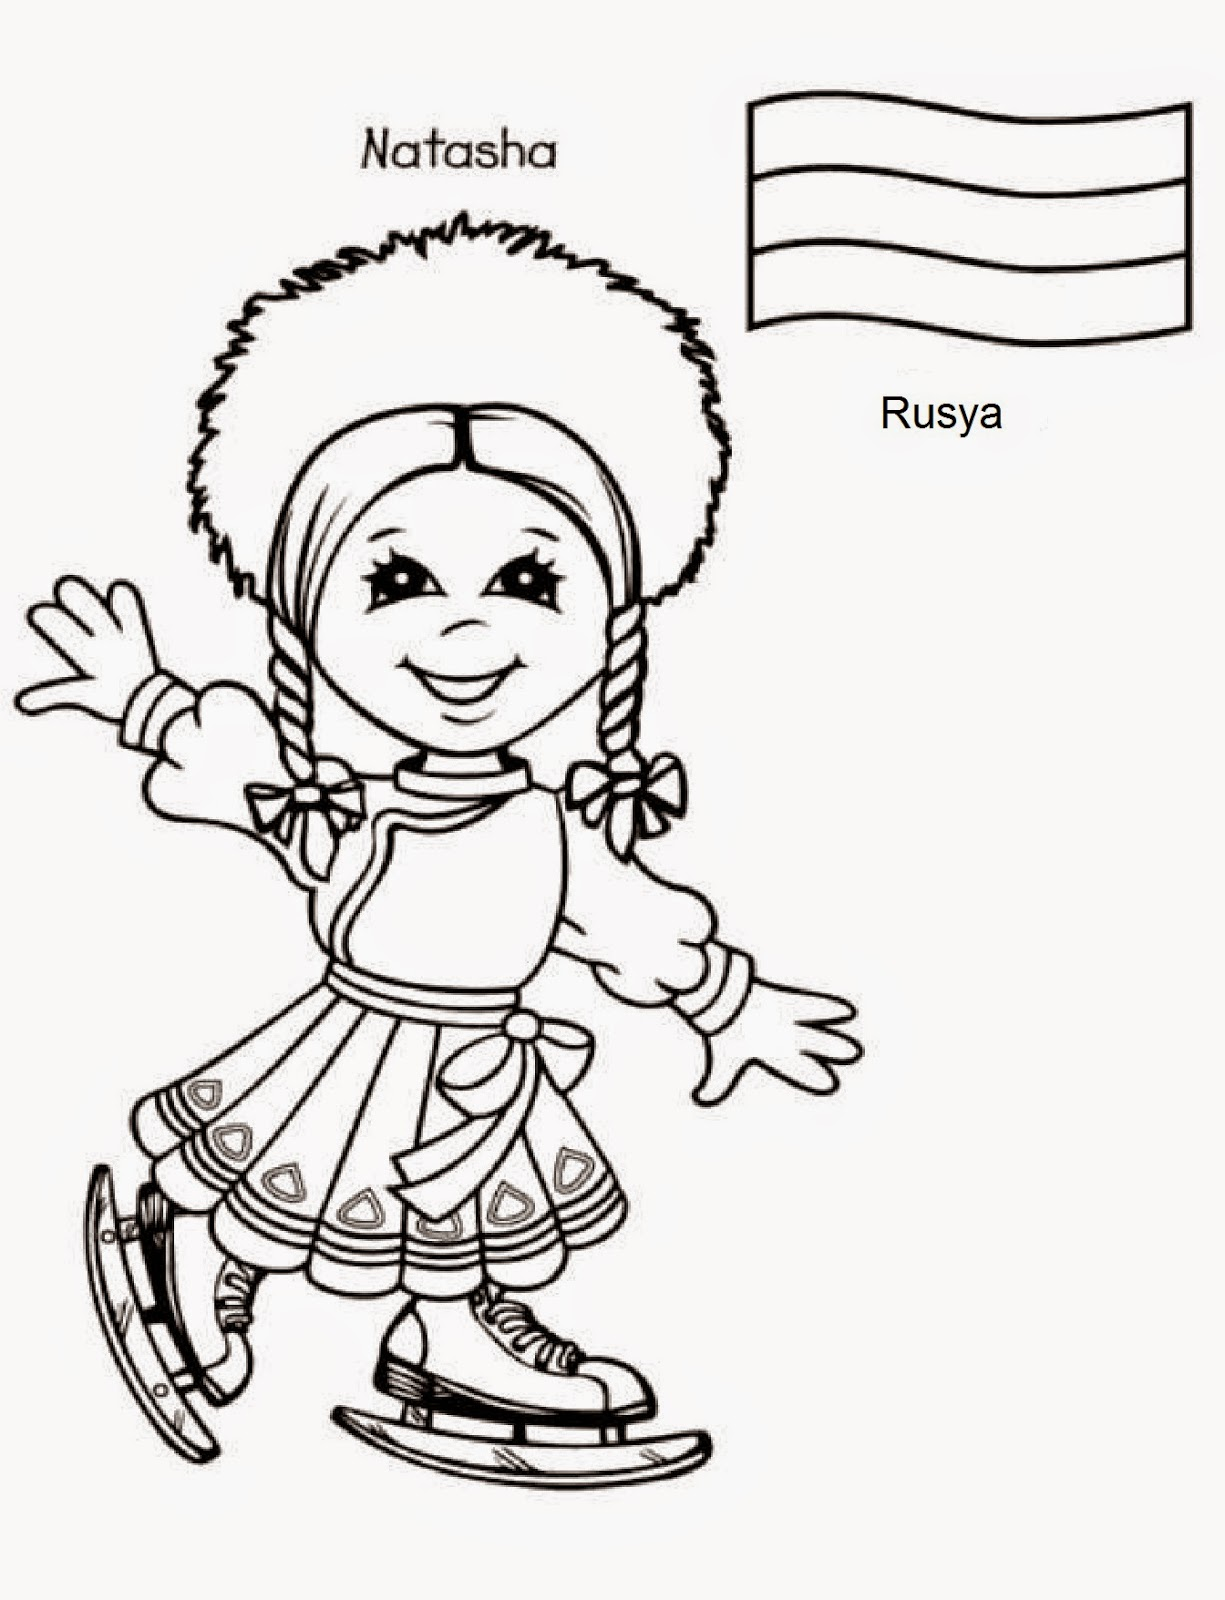 23 nisan d nya ocuklar boyama sayfalar bilgi e nisi for Children of the world coloring pages